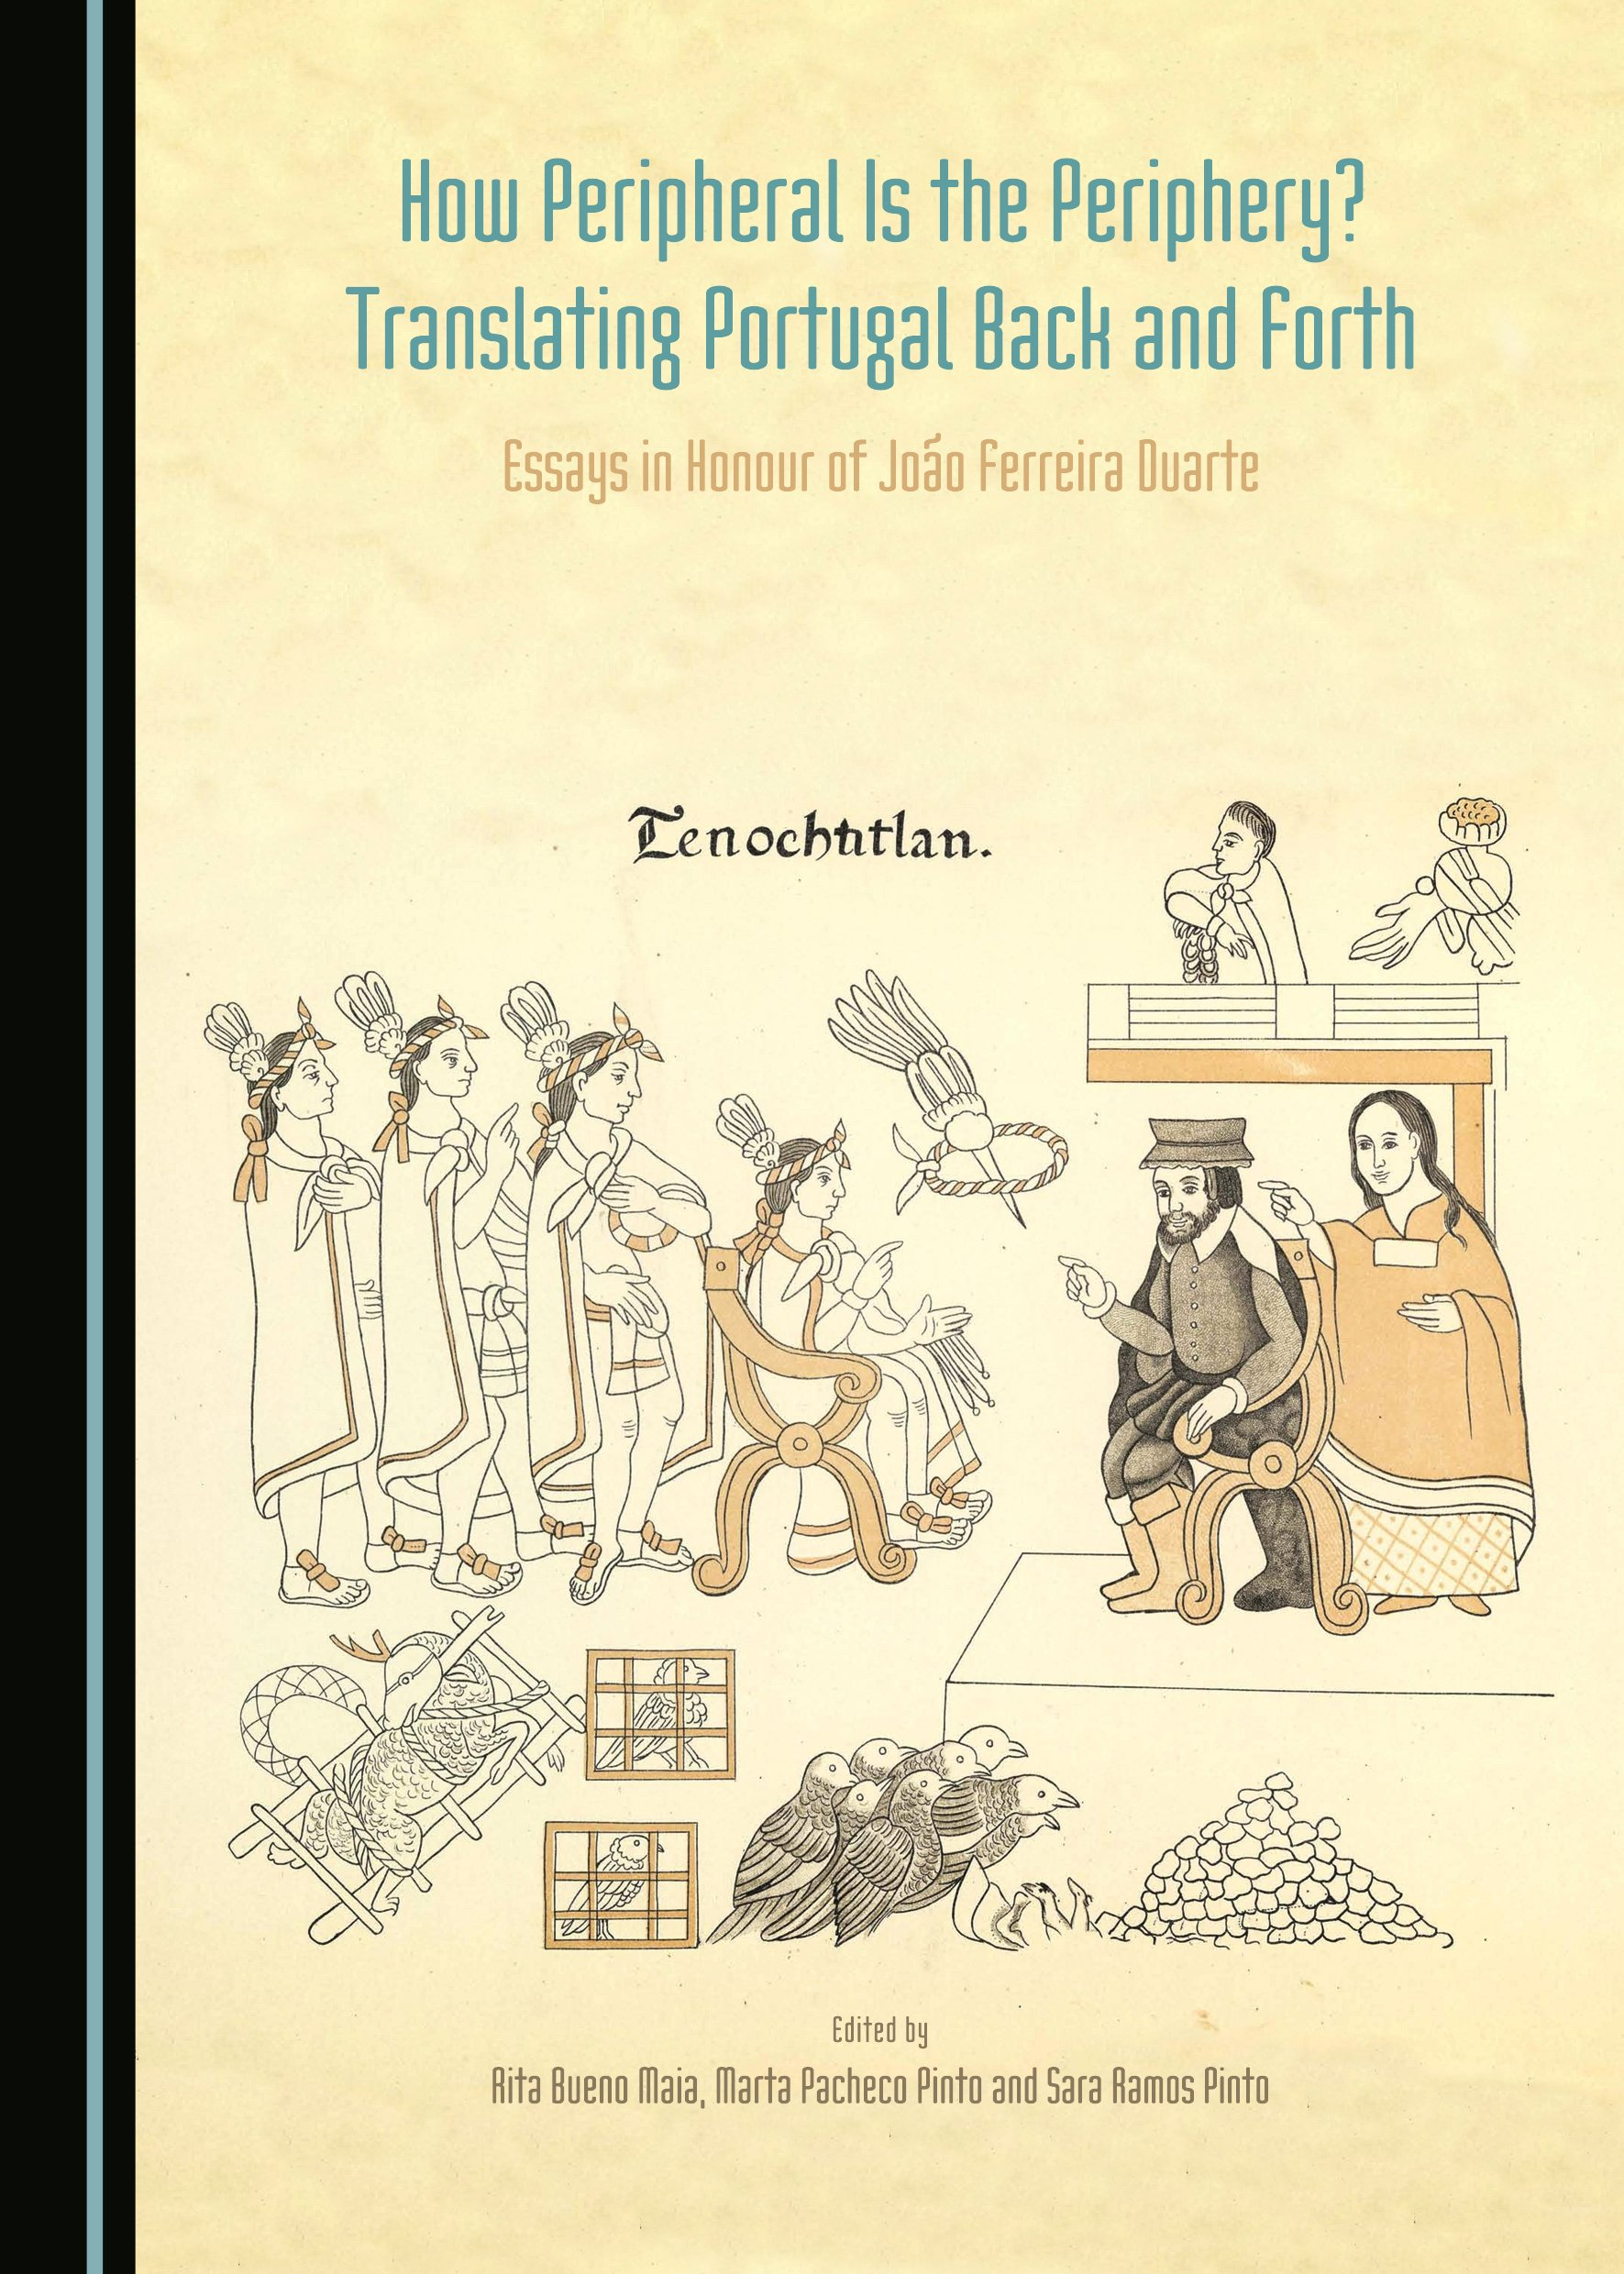 How Peripheral is the Periphery? Translating Portugal Back and Forth: Essays in Honour of João Ferreira Duarte